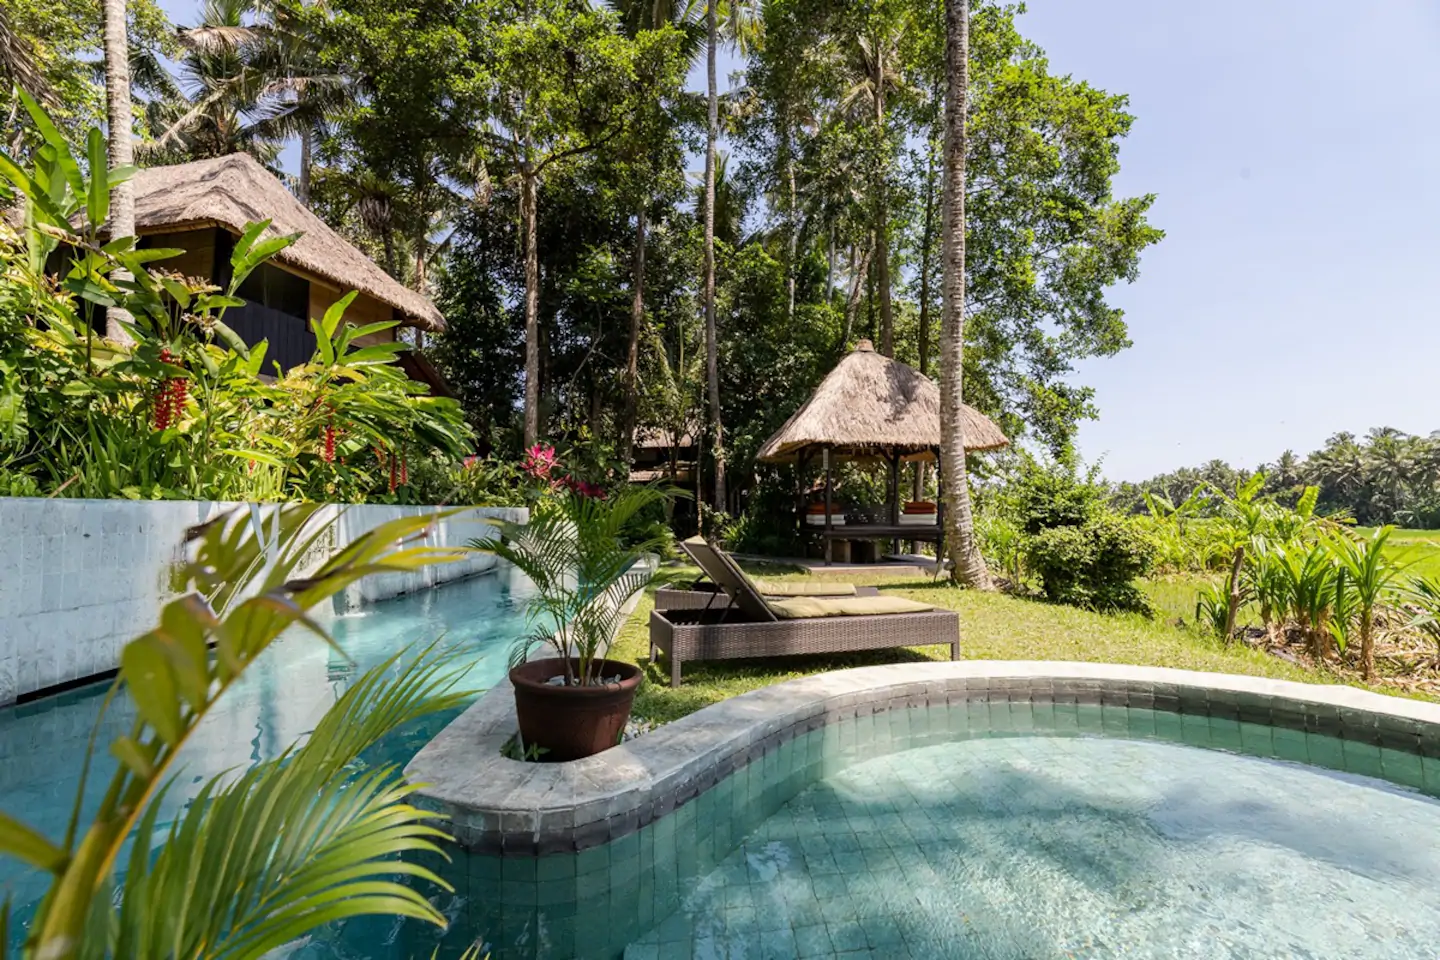 Poolside to the ricefields